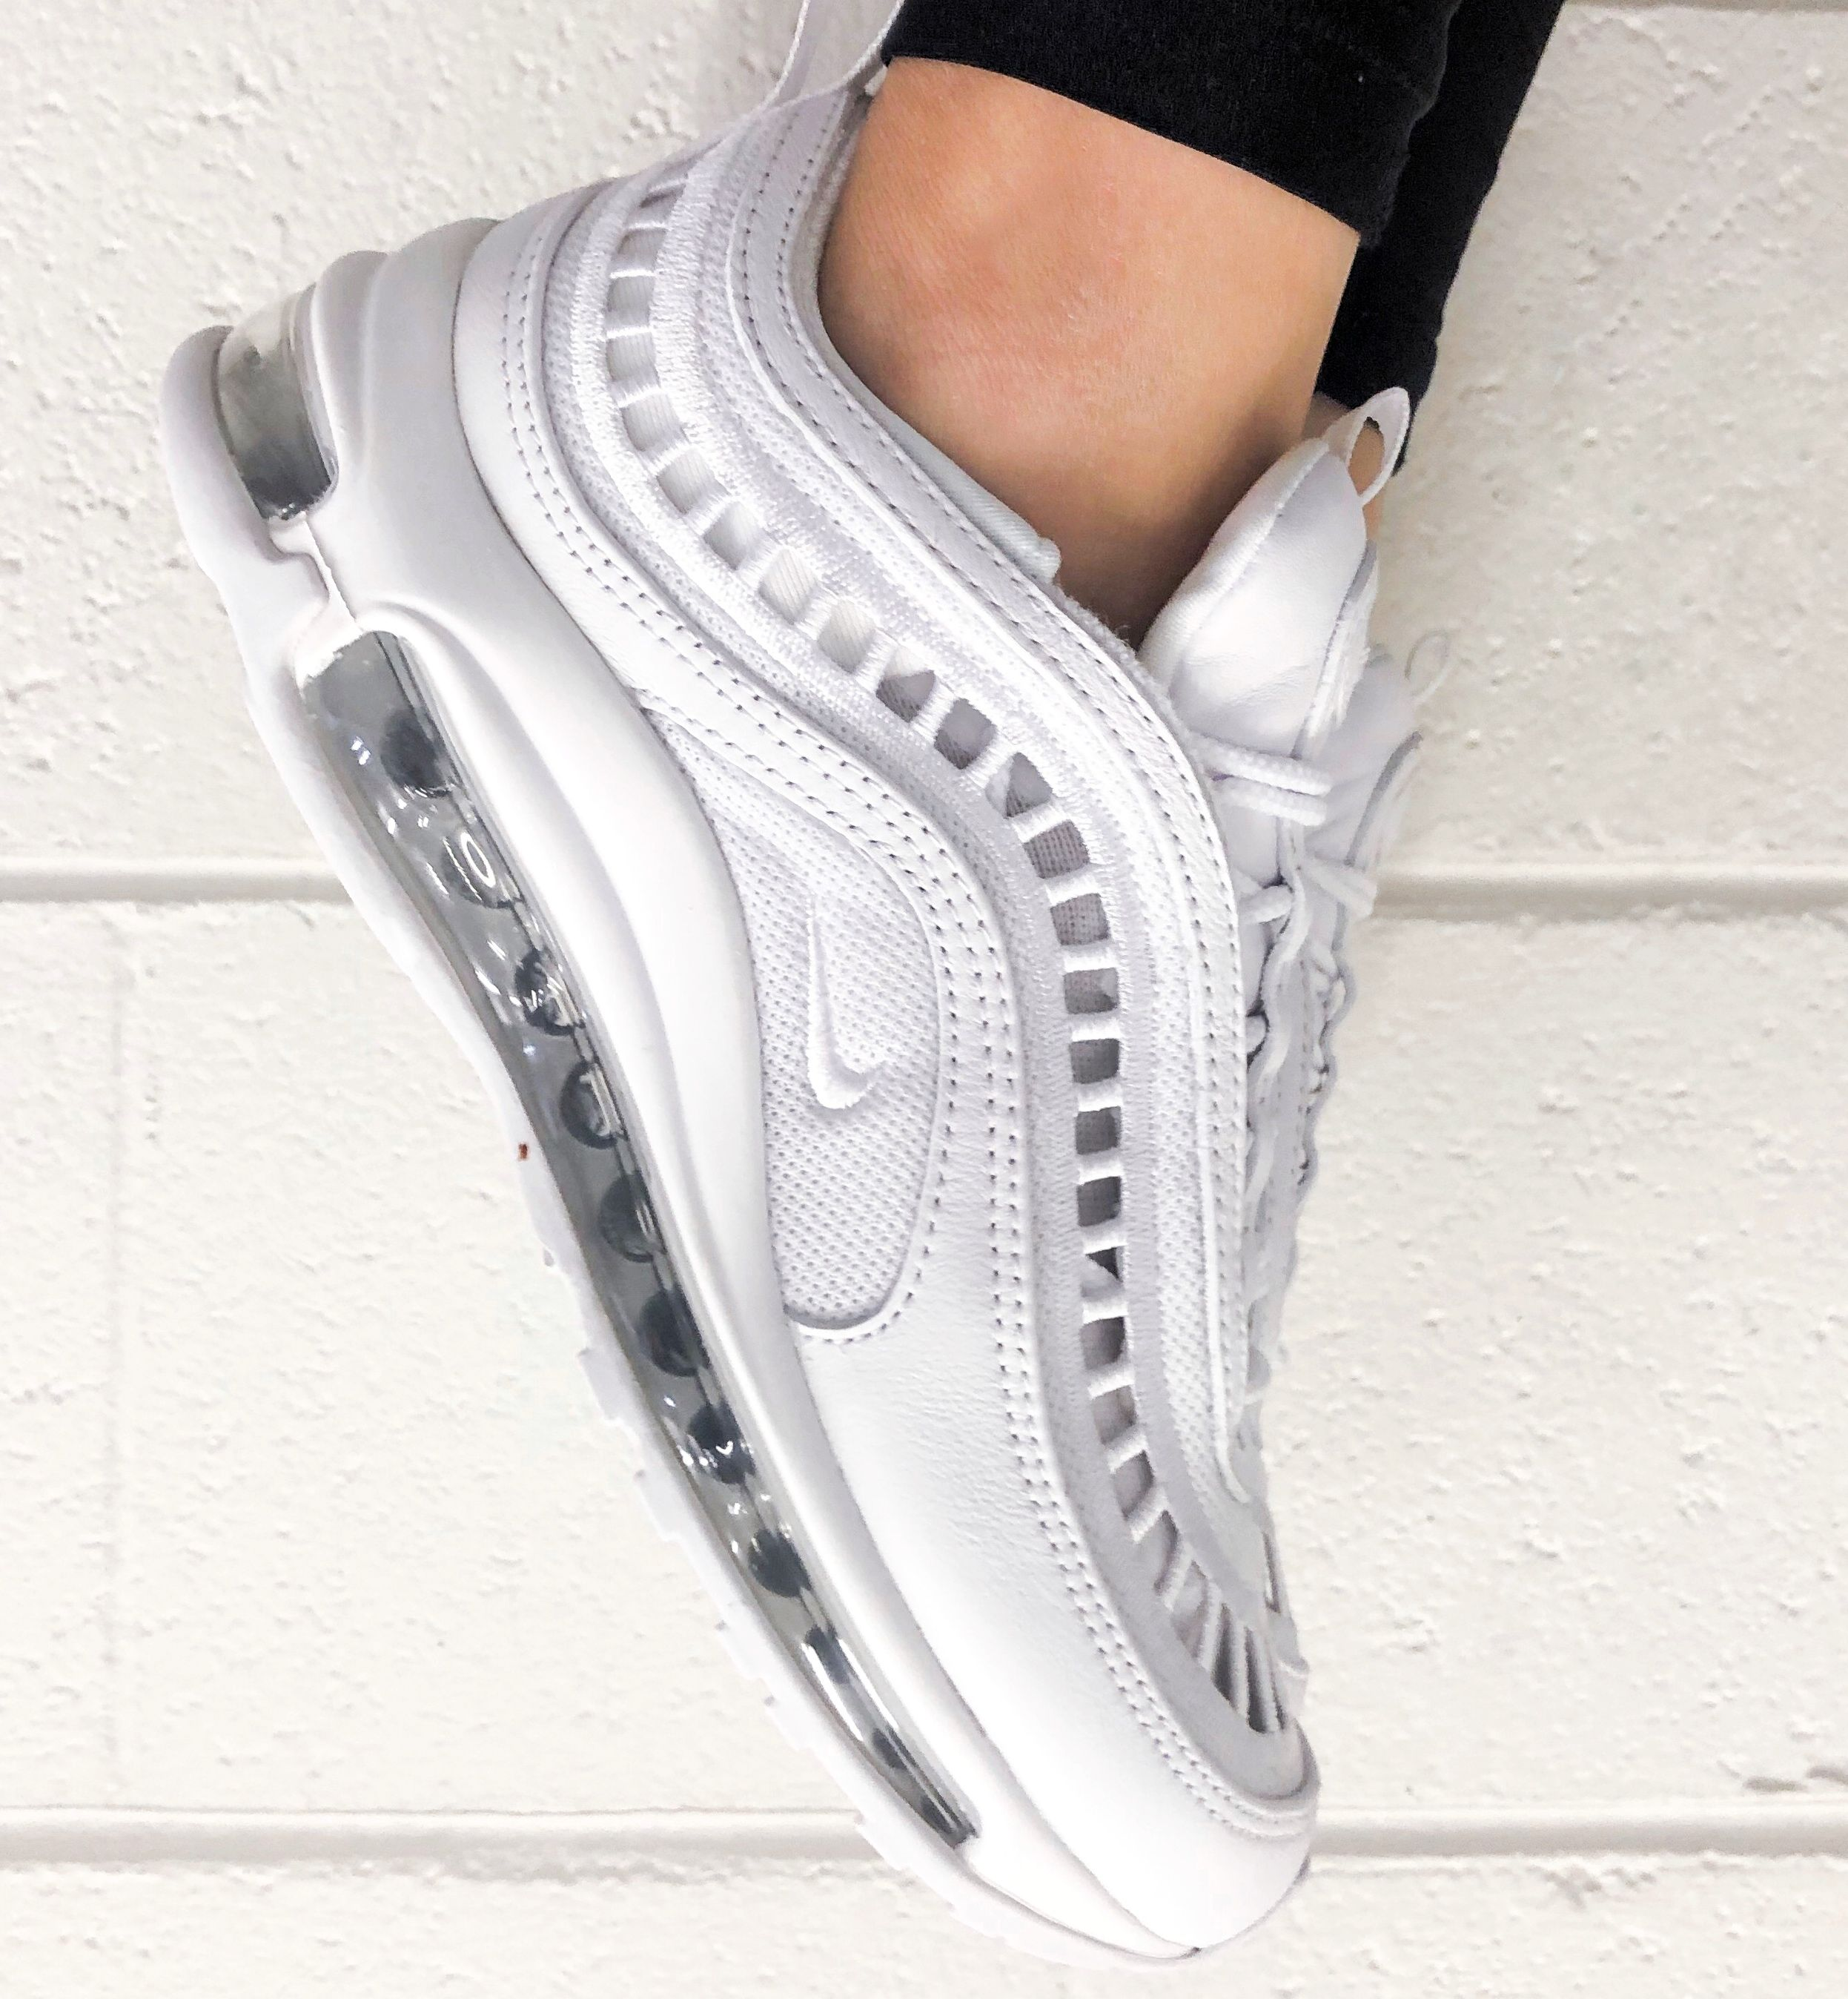 These Classy Nike Air Max Sneakers Can Be Dressed Up or Down